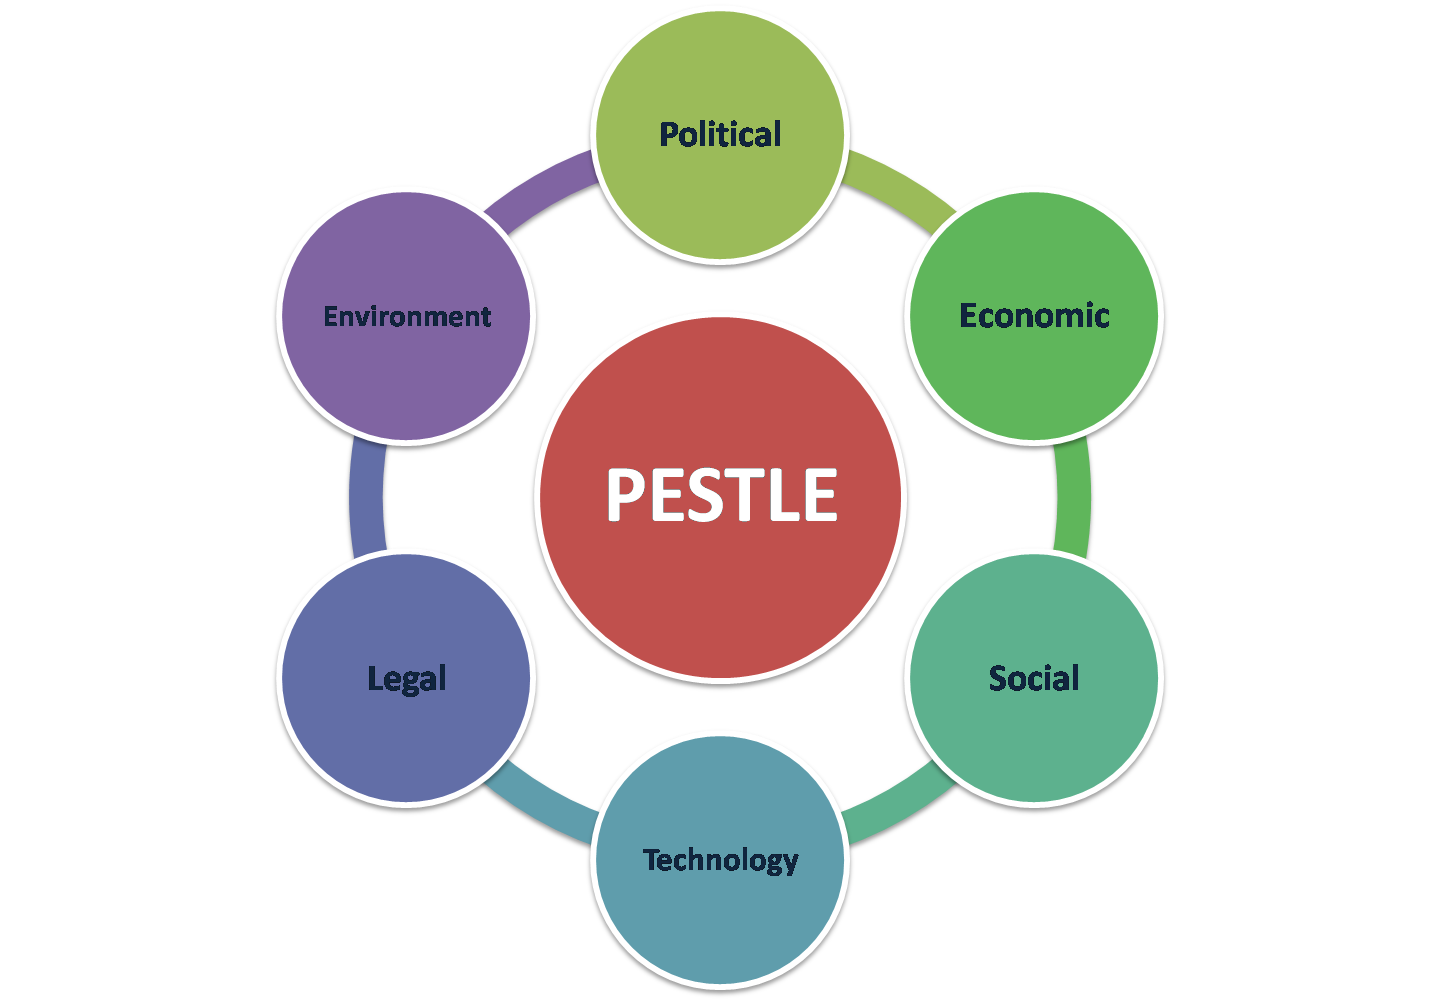 pest analysis colombia The pestle analysis is a useful method to use in order to identify the external factors that influence an organization you will learn:  pest steepled step.